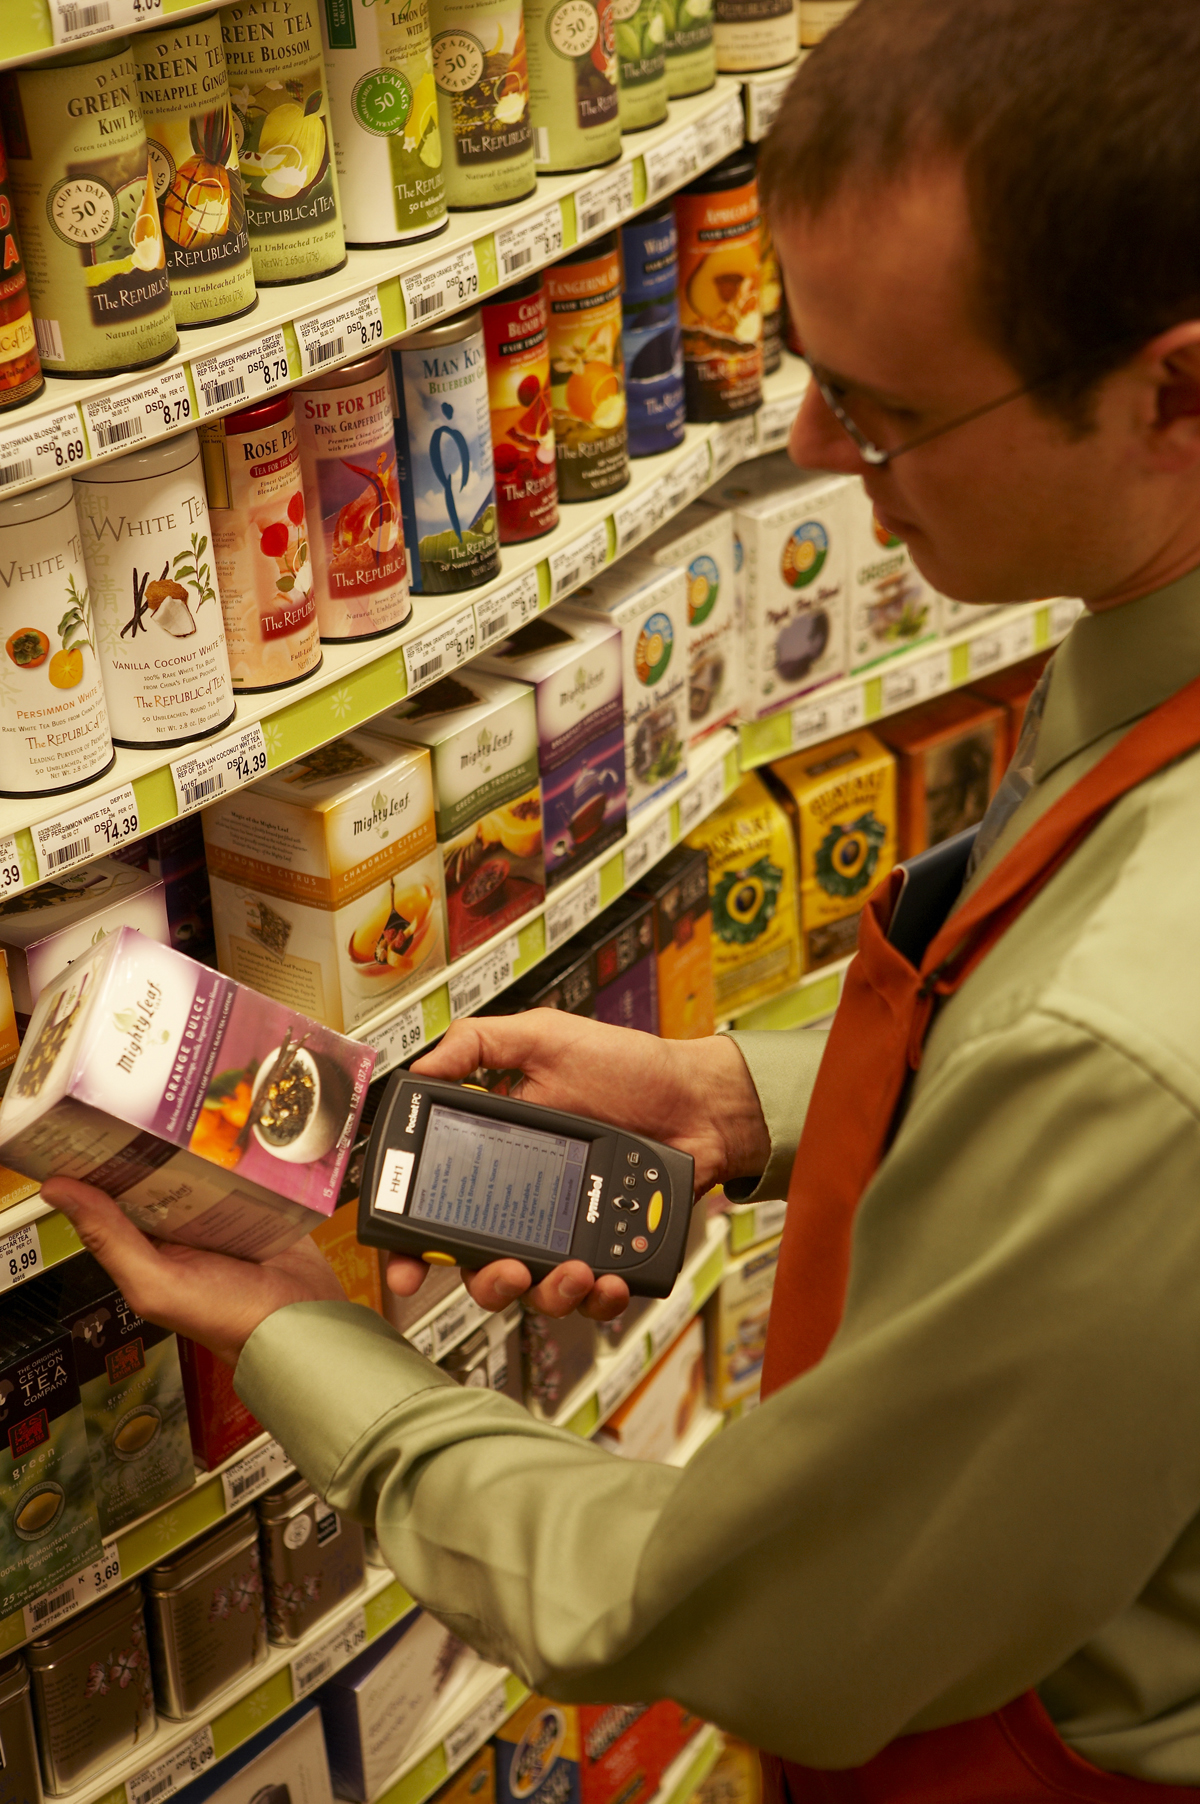 <p>Advanced wireless technology helps personal shoppers quickly and accurately fulfill an order according to any special instructions provided by the customer.</p>